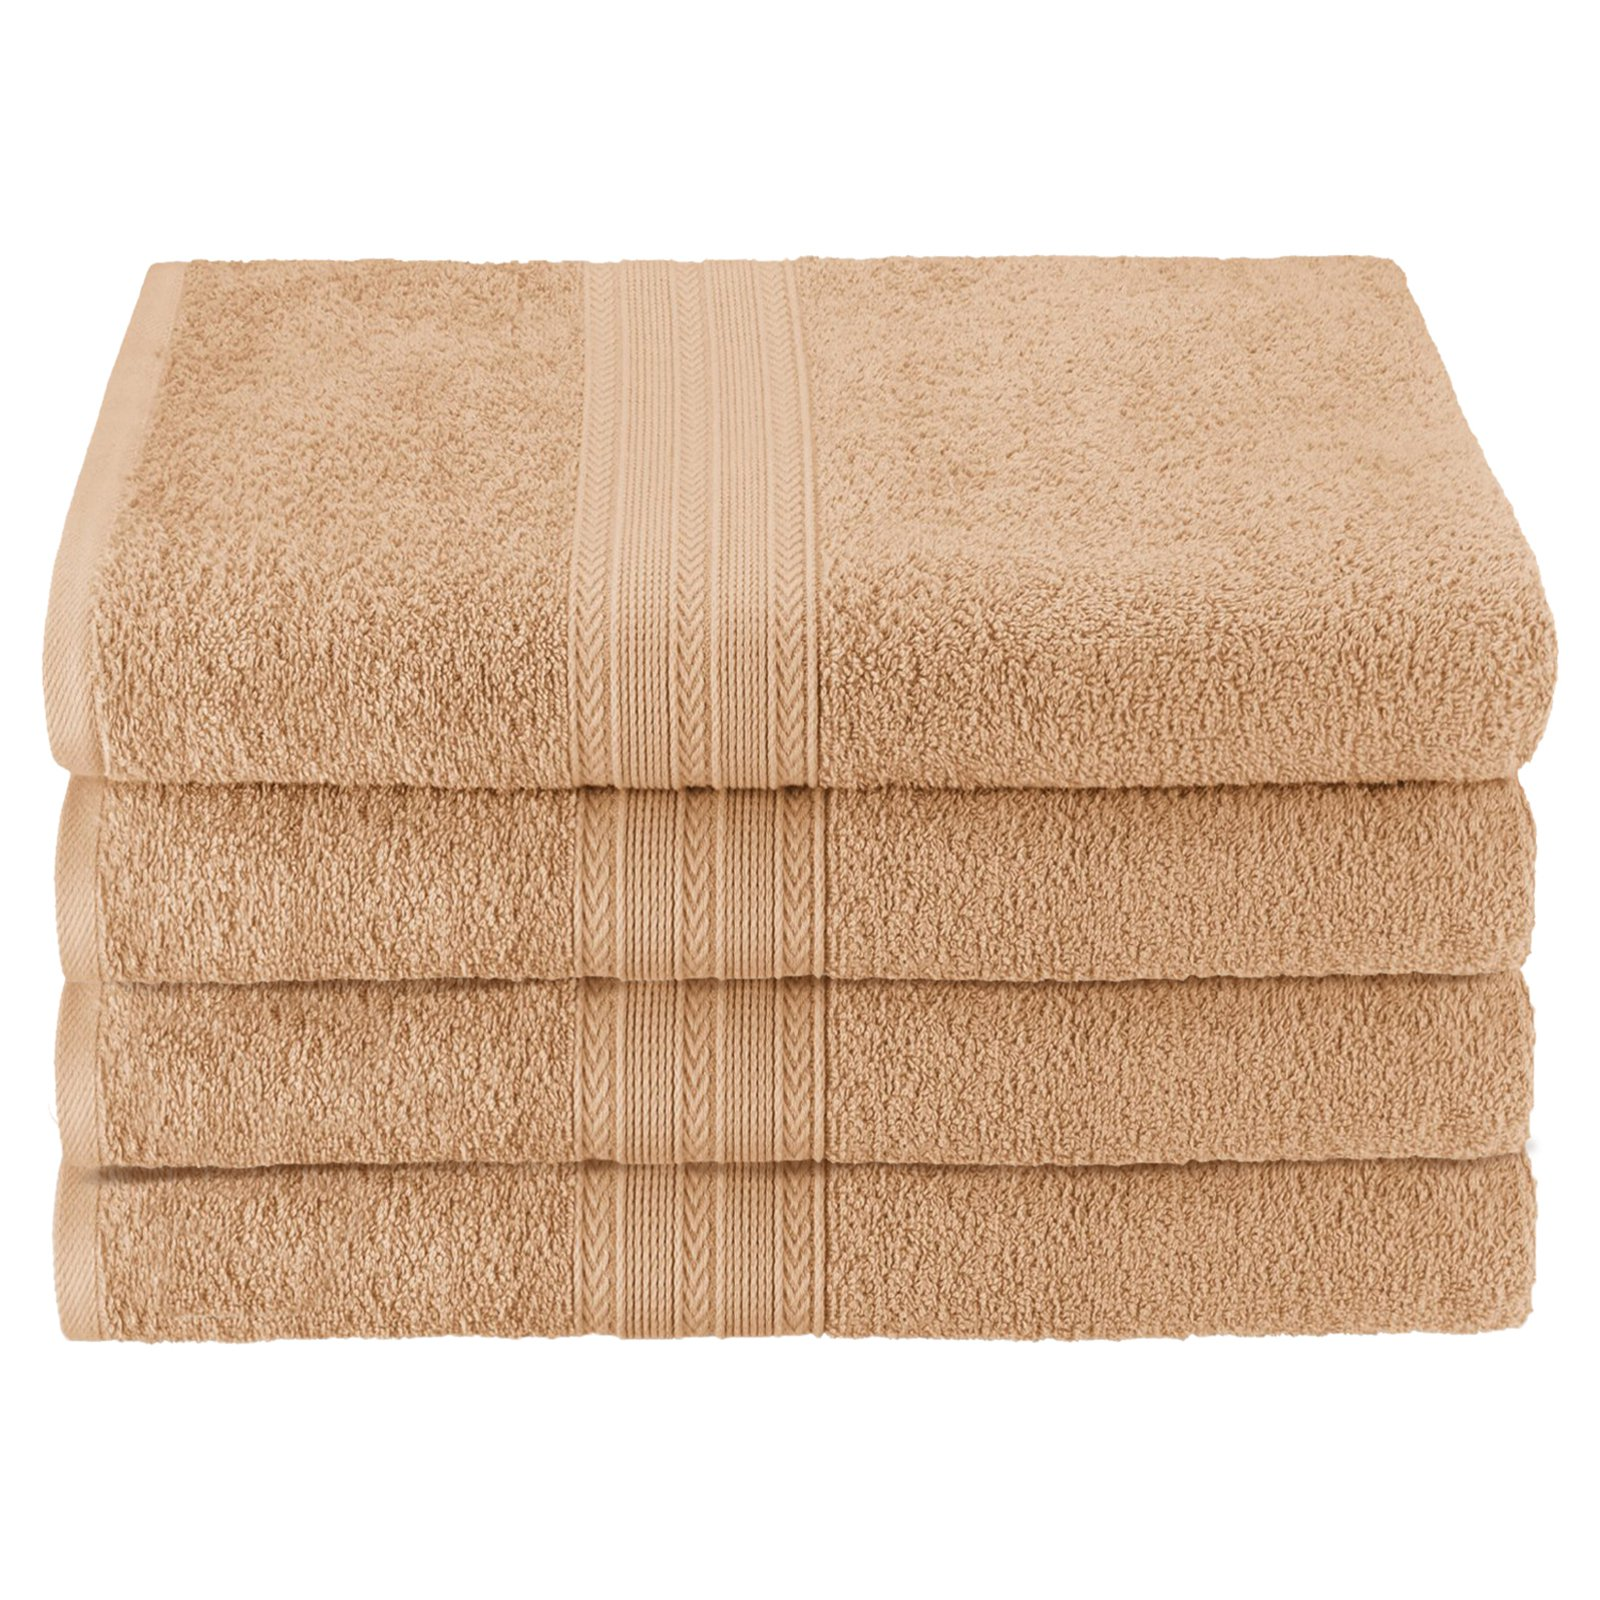 Superior Eco-Friendly 100% Ringspun Cotton 4Pc Bath Towel Set by Supplier Generic